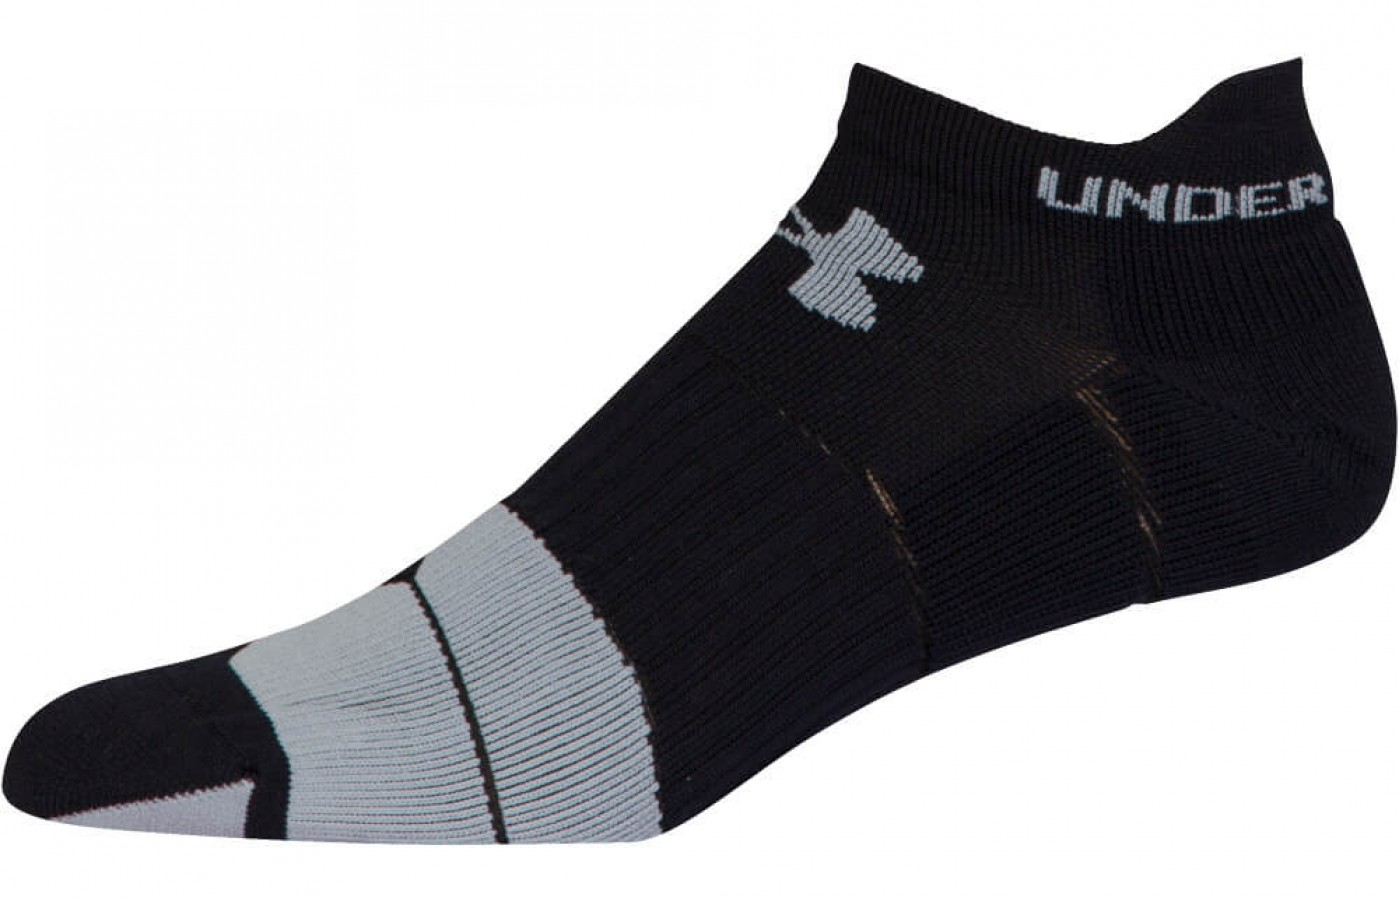 Under Armour Run Socks Side View